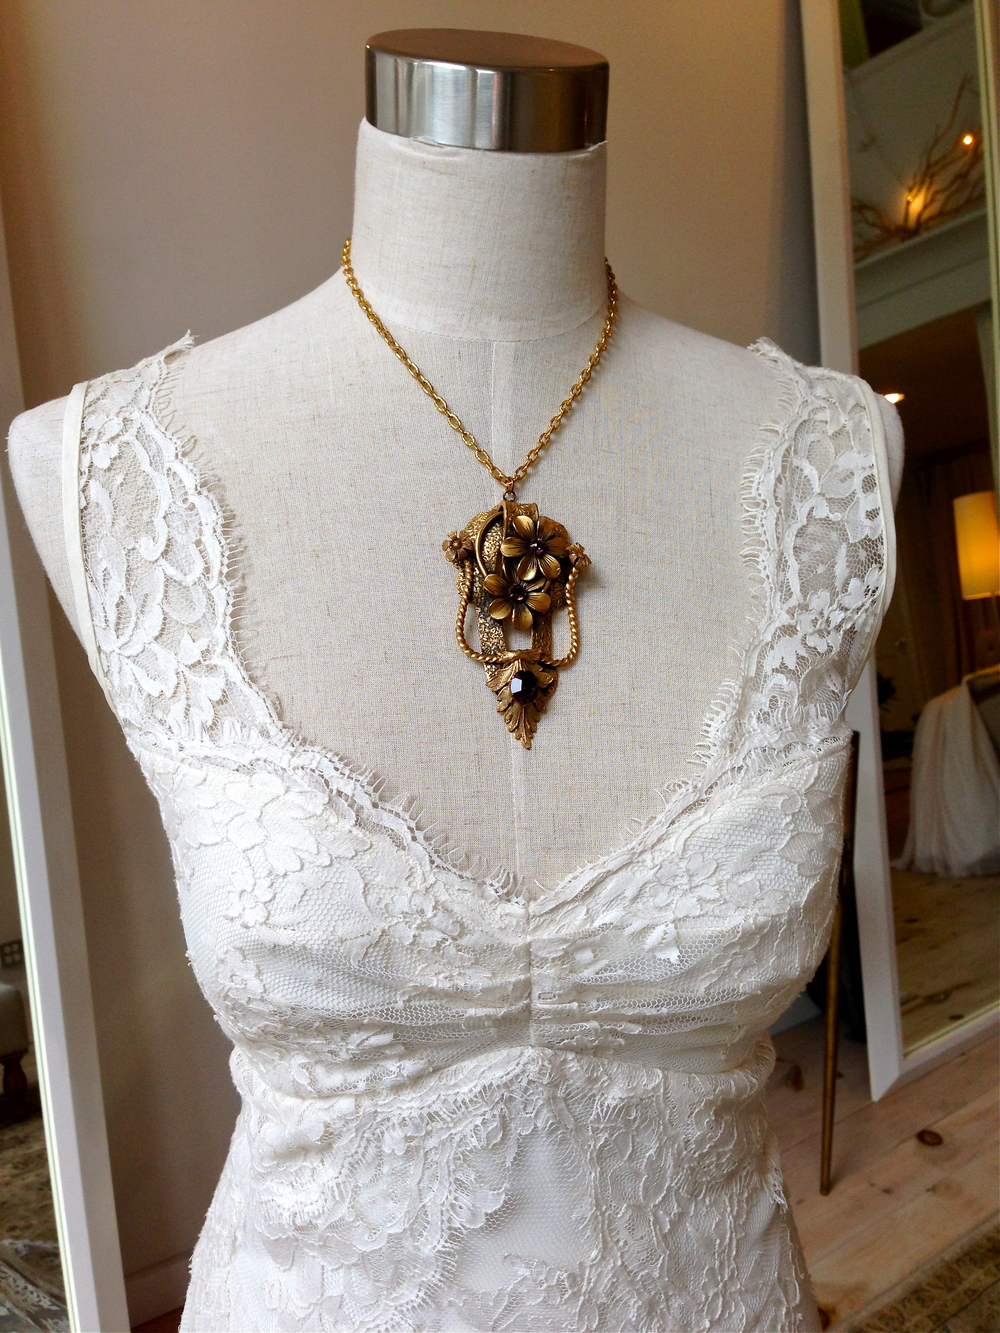 The ruched bodice and sweetheart neckline are both flirty and incredibly flattering! Paired here with a gold and amethyst vintage necklace that evokes the floral pattern found throughout the lace.